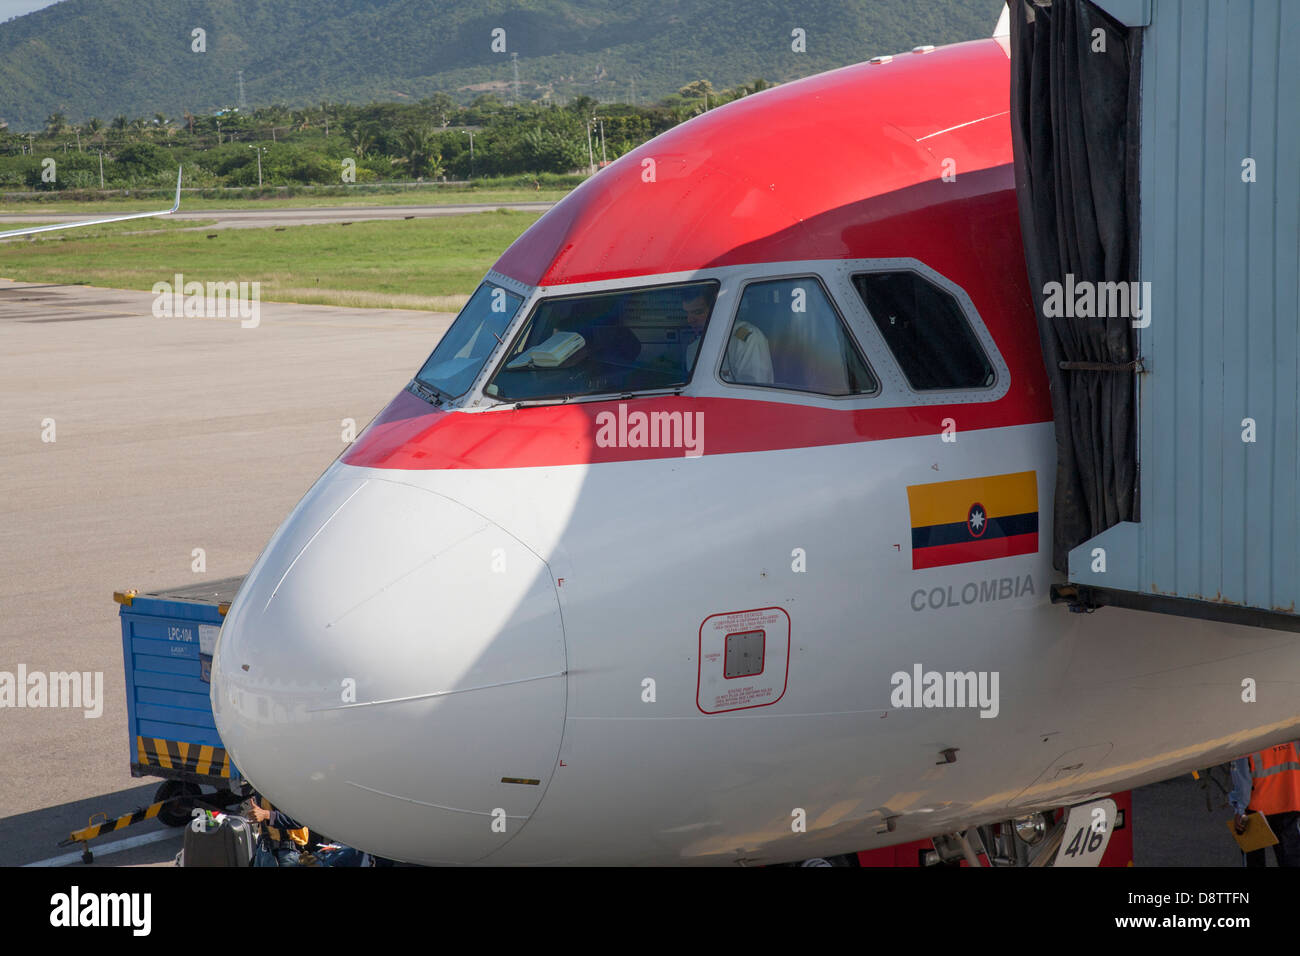 Avianca Airlines Plane Taxiing at Santa Marta Airport, Colombia - Stock Image